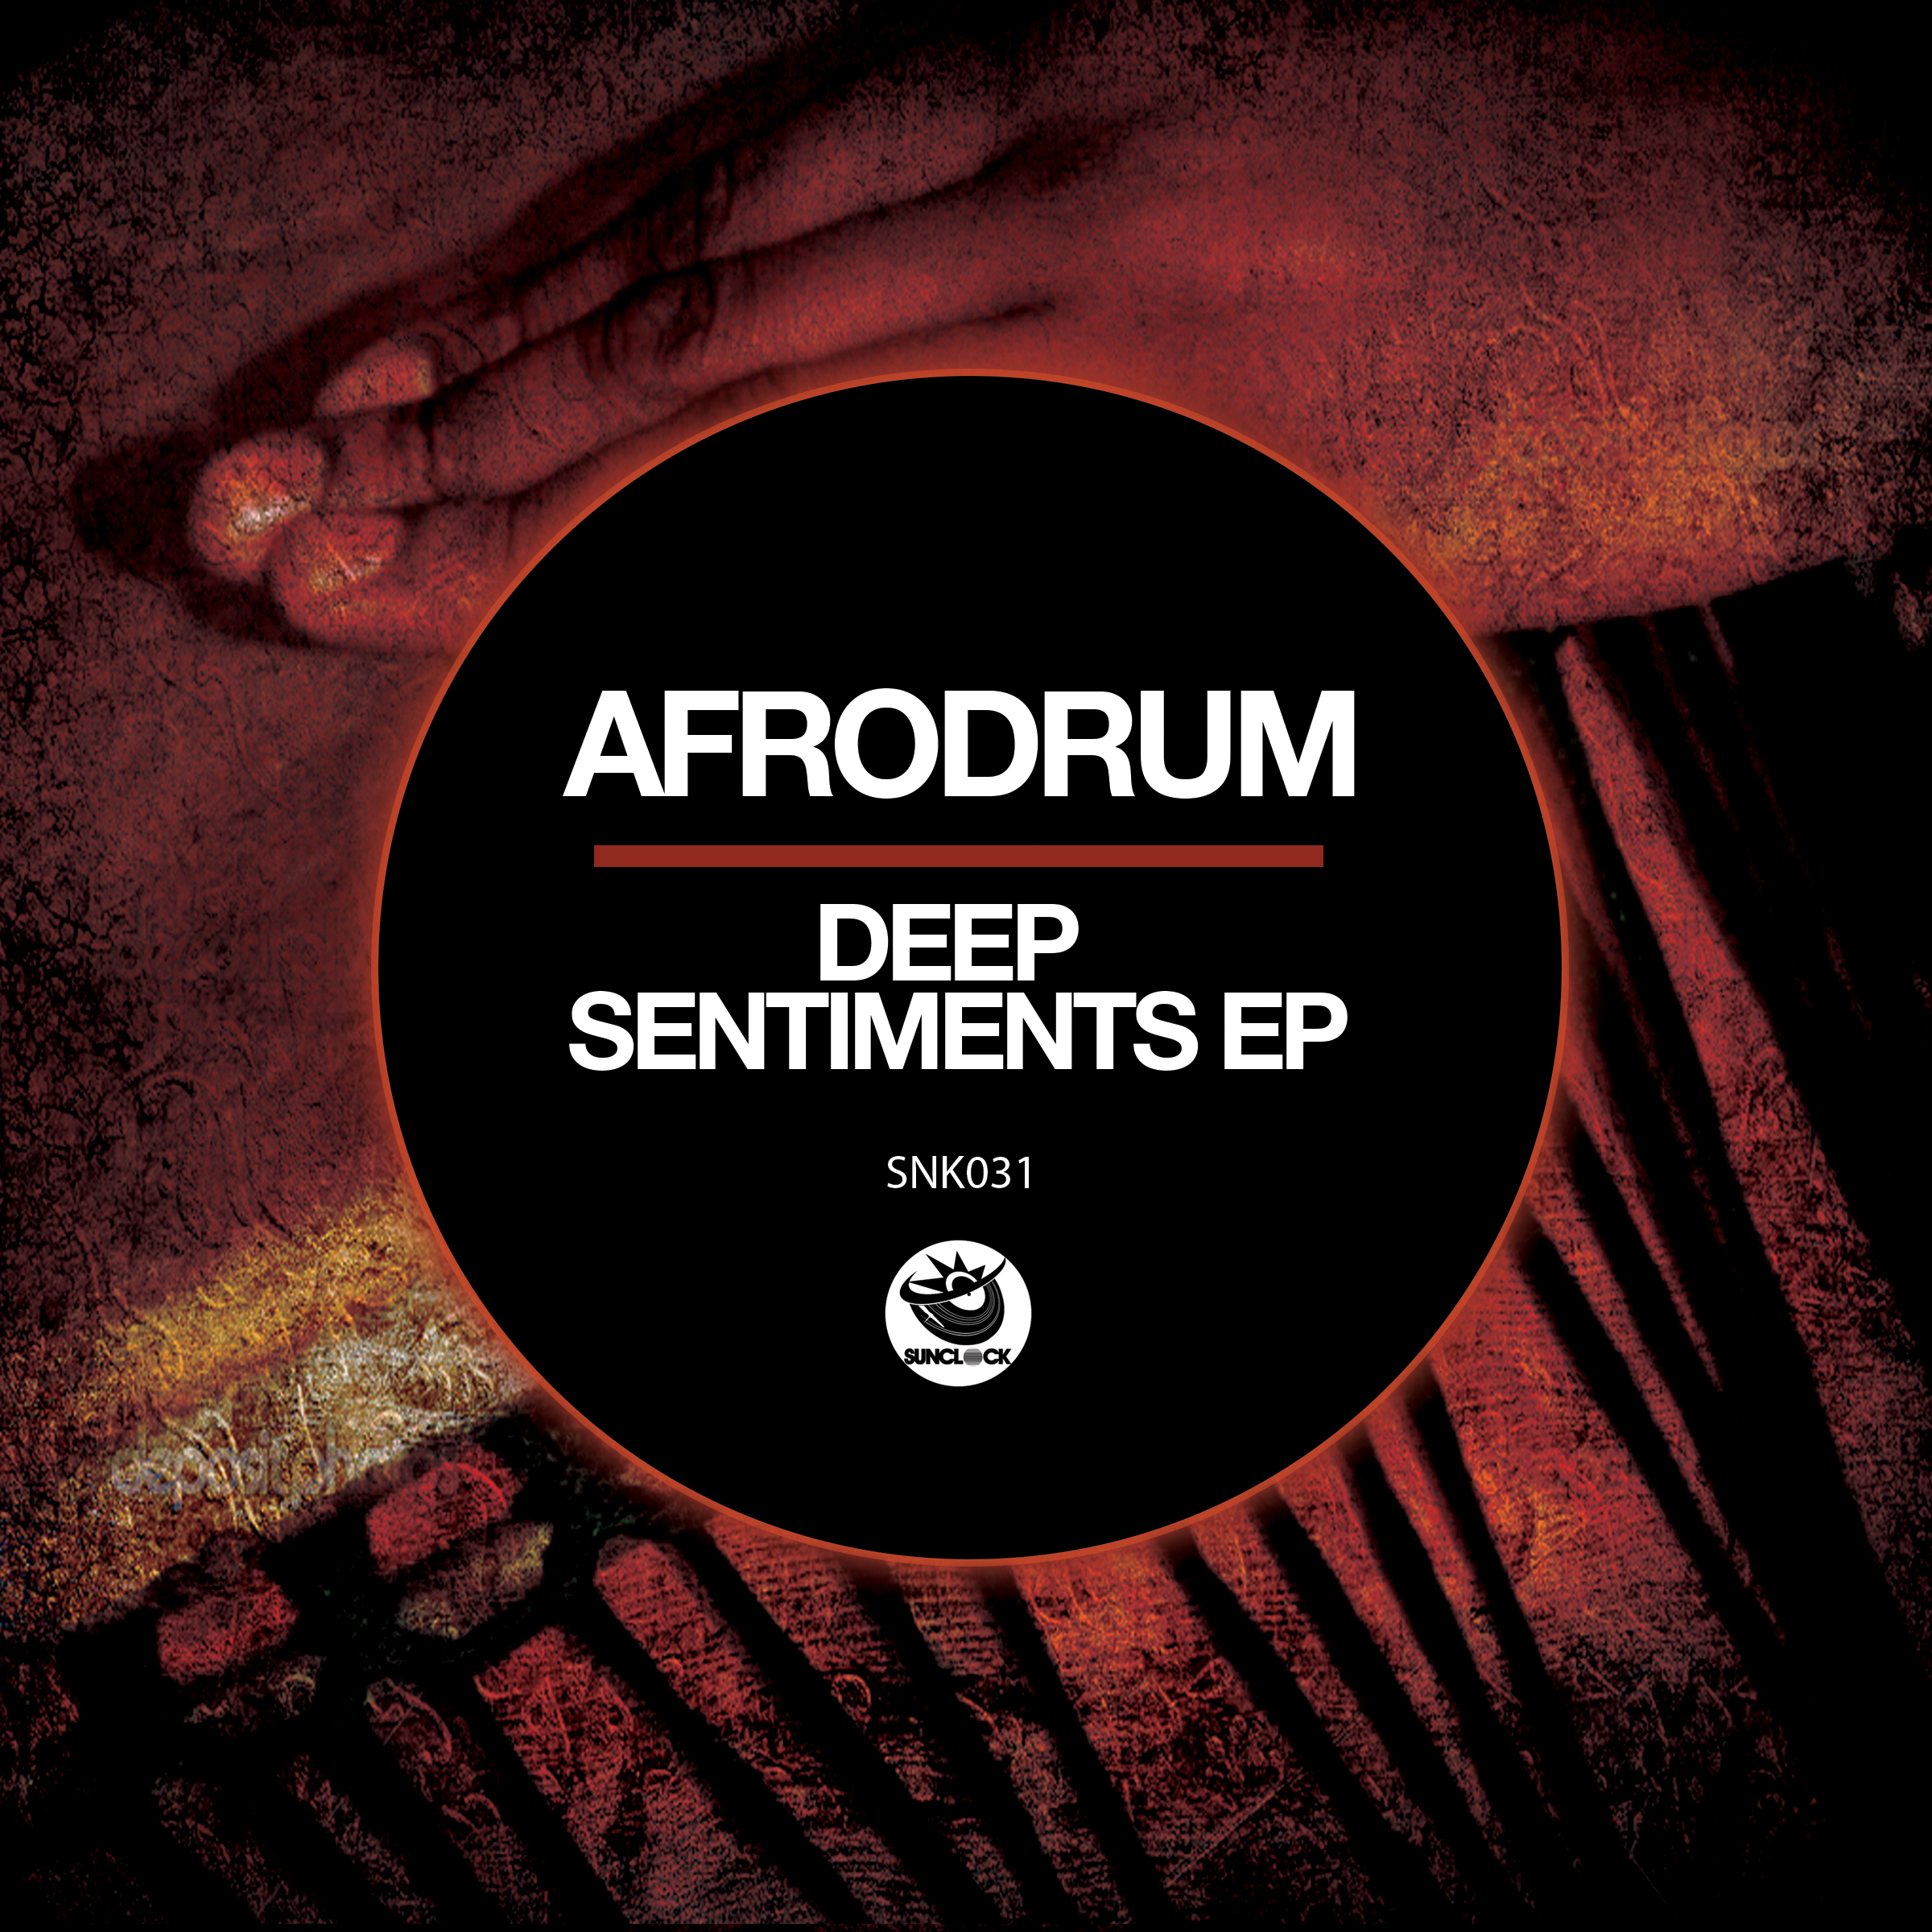 AfroDrum - Deep Sentiments Ep - SNK031 Cover